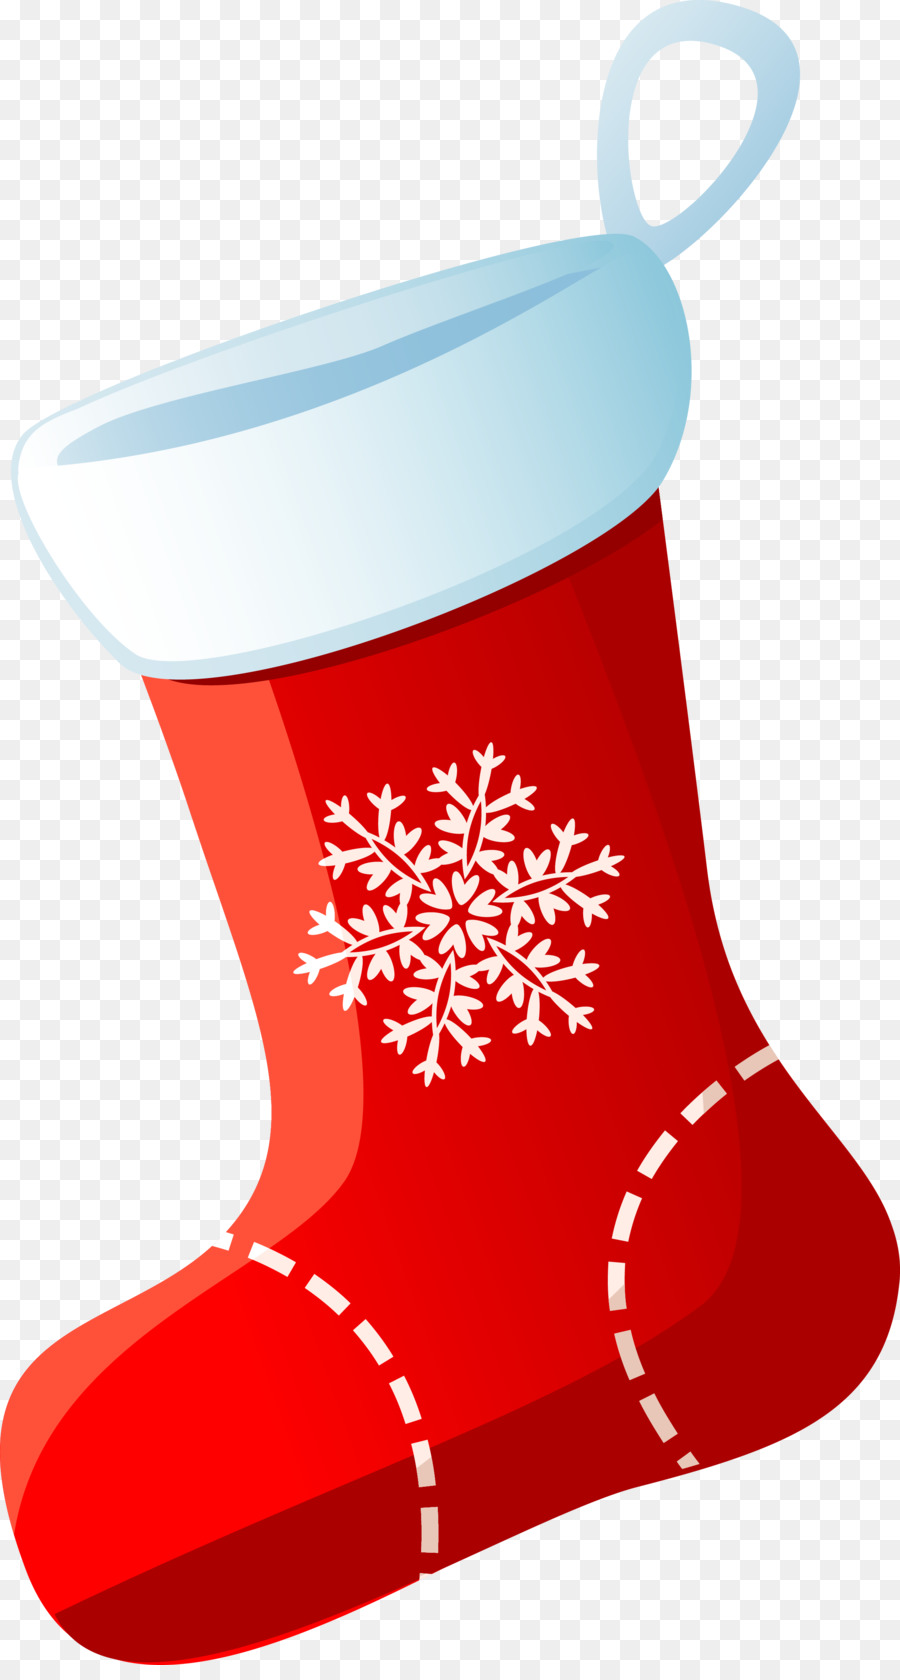 Red Christmas Ornament png download.